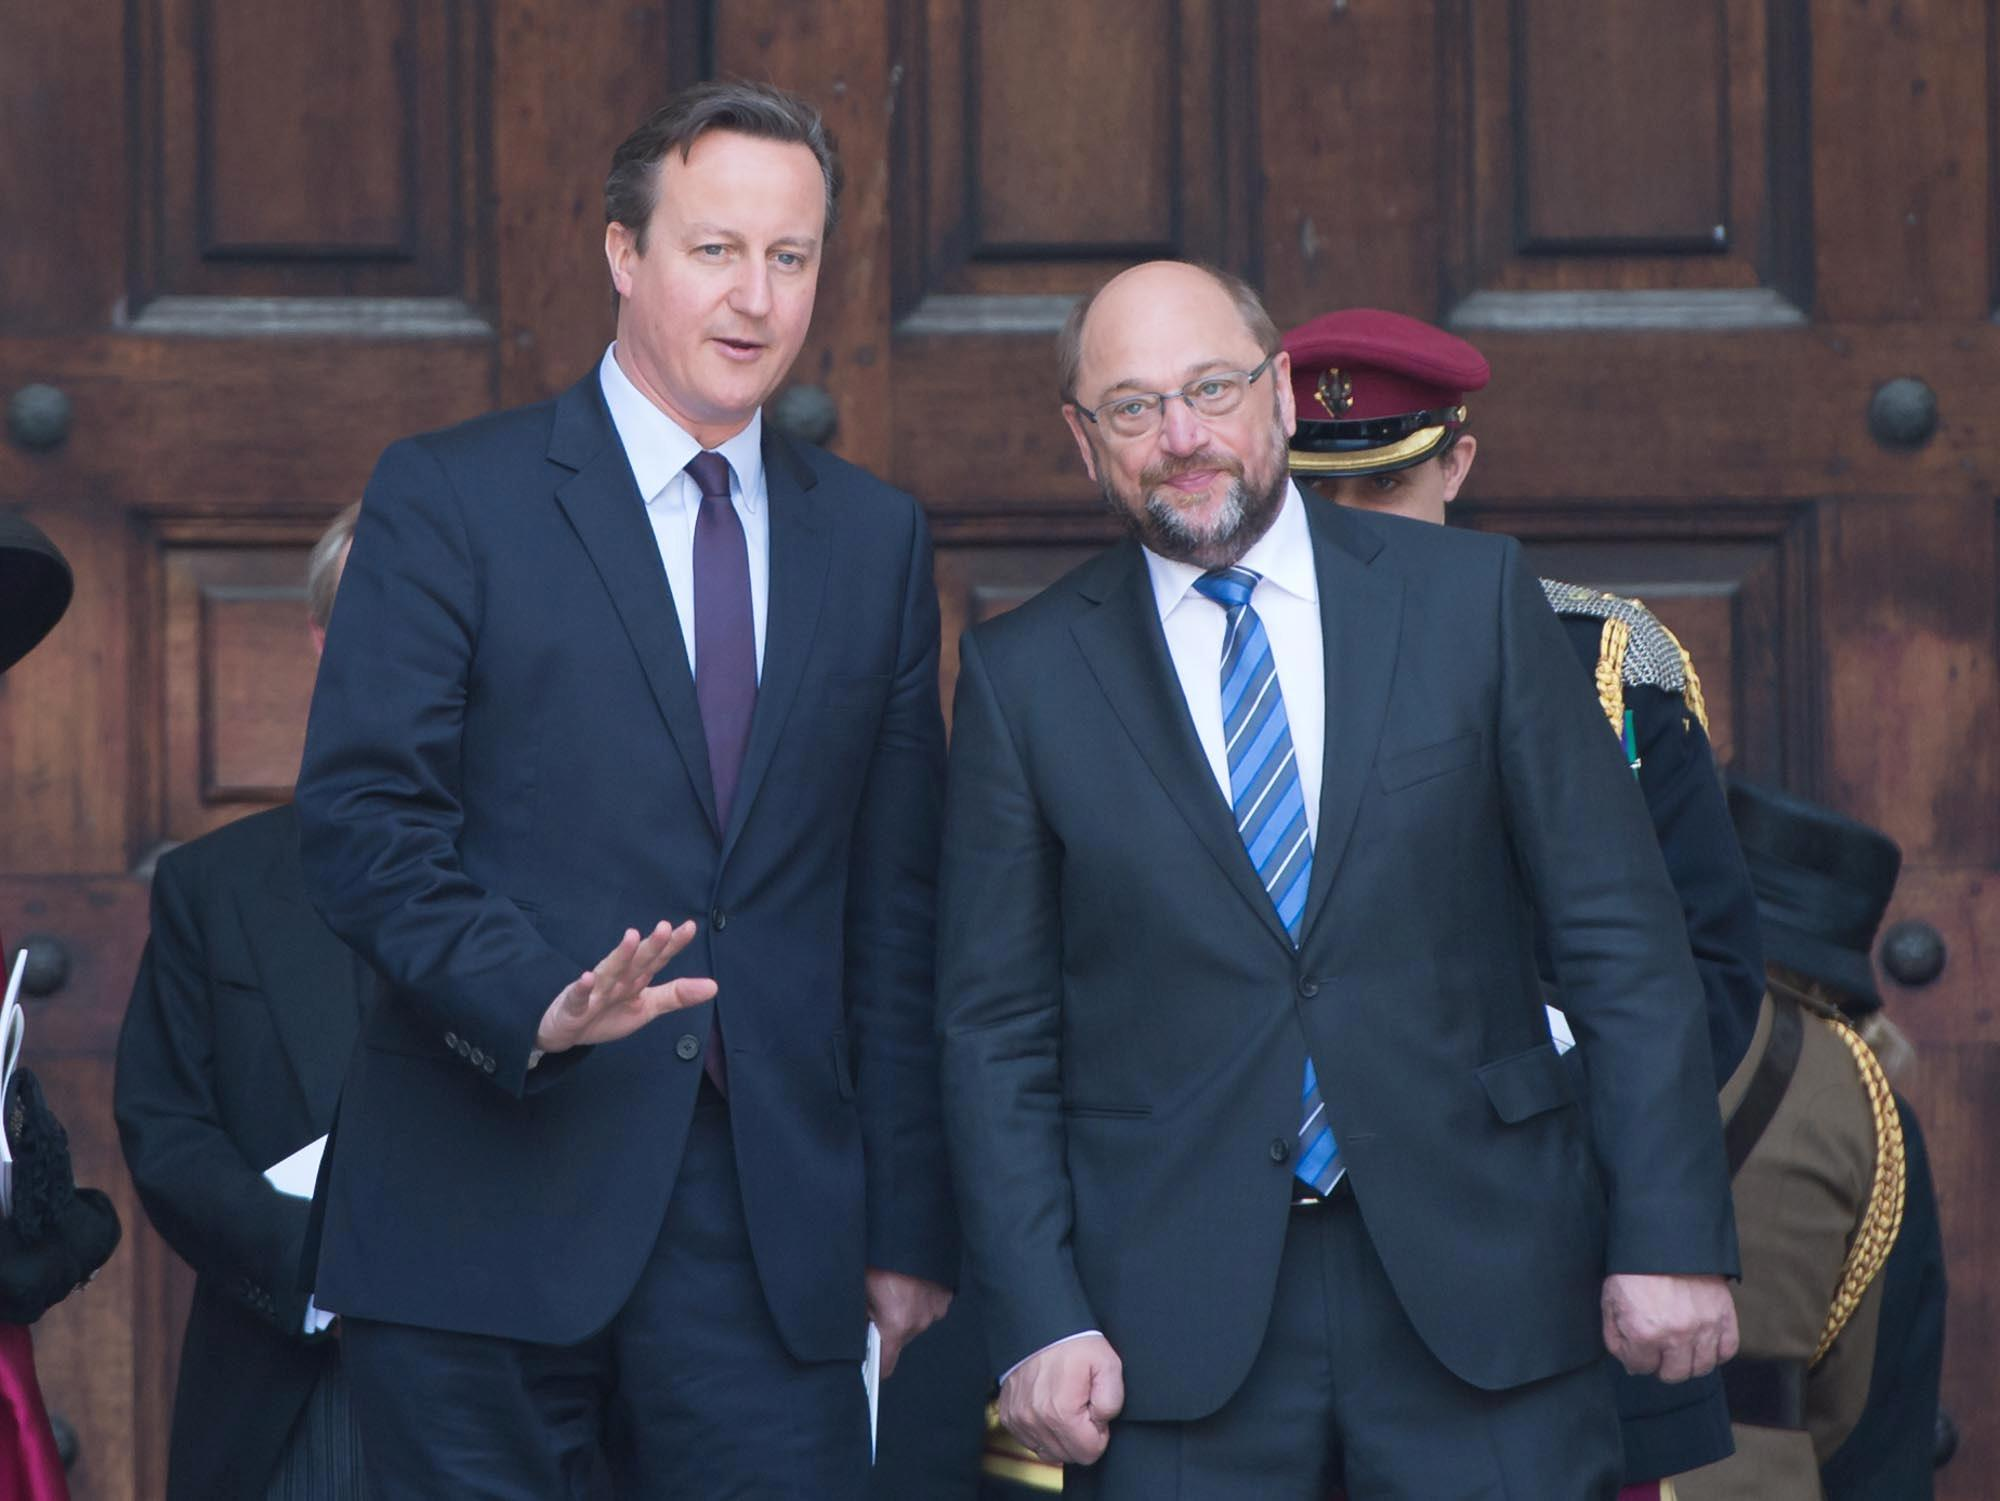 RT @StPaulsLondon: Prime Minister David Cameron and President of the European Parliament Martin Schulz at today's #Waterloo200 service. http://t.co/L81SDJscq6